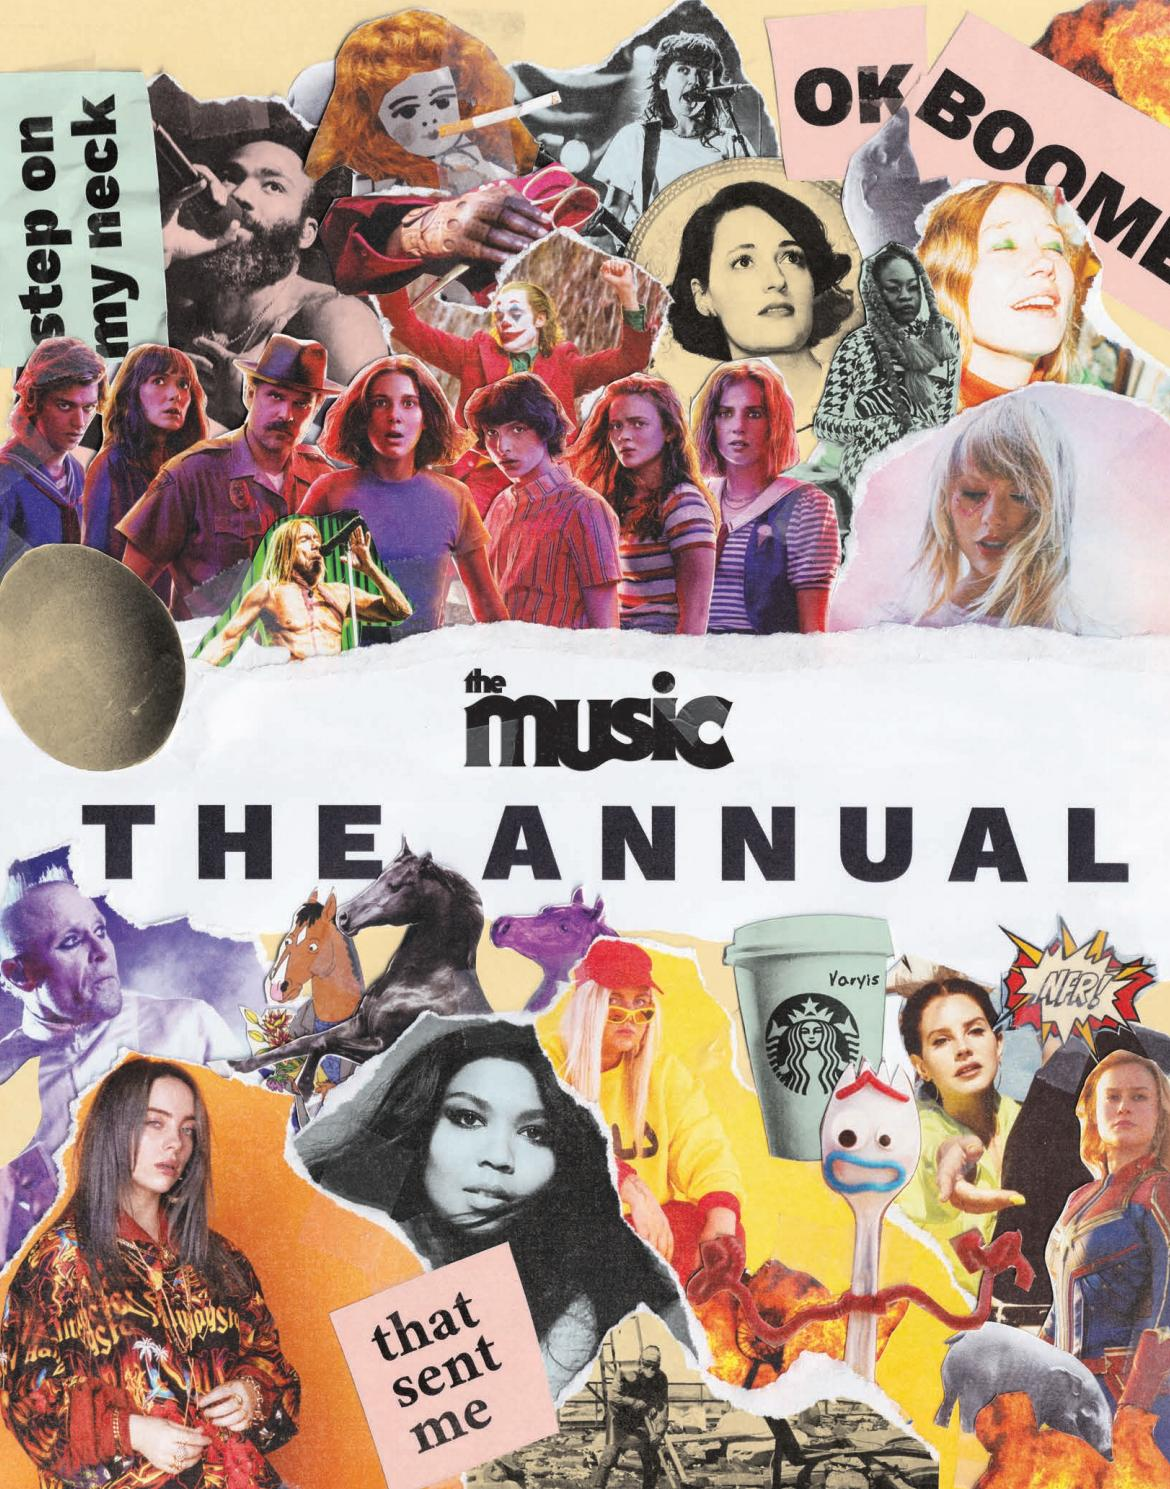 The Music Sydney The Annual 2019 2020 By Themusic Com Au Issuu Under the rotted flesh 5. the music sydney the annual 2019 2020